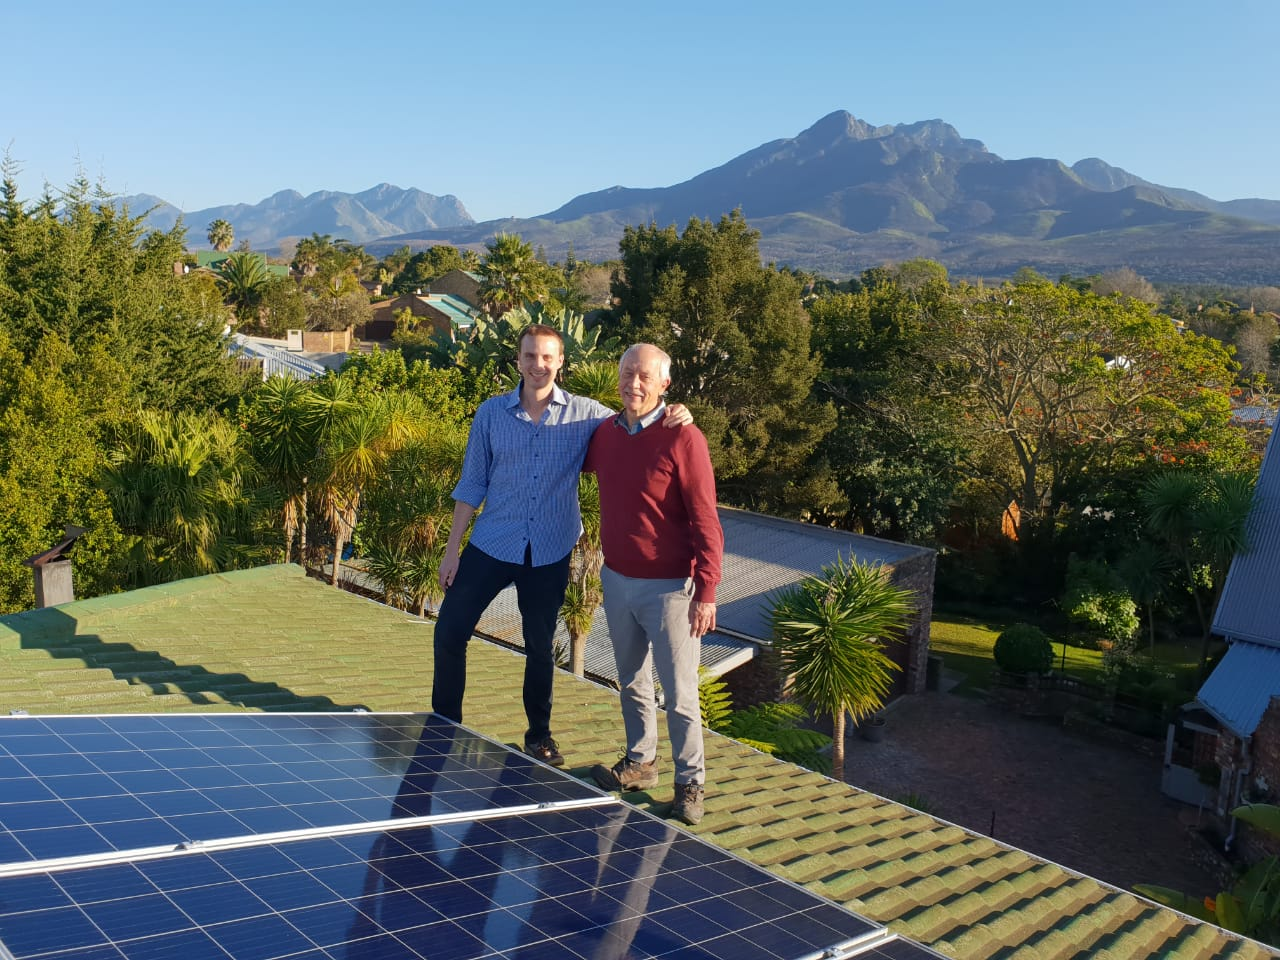 Sunvolt solar energy founders at a solar energy installation in George